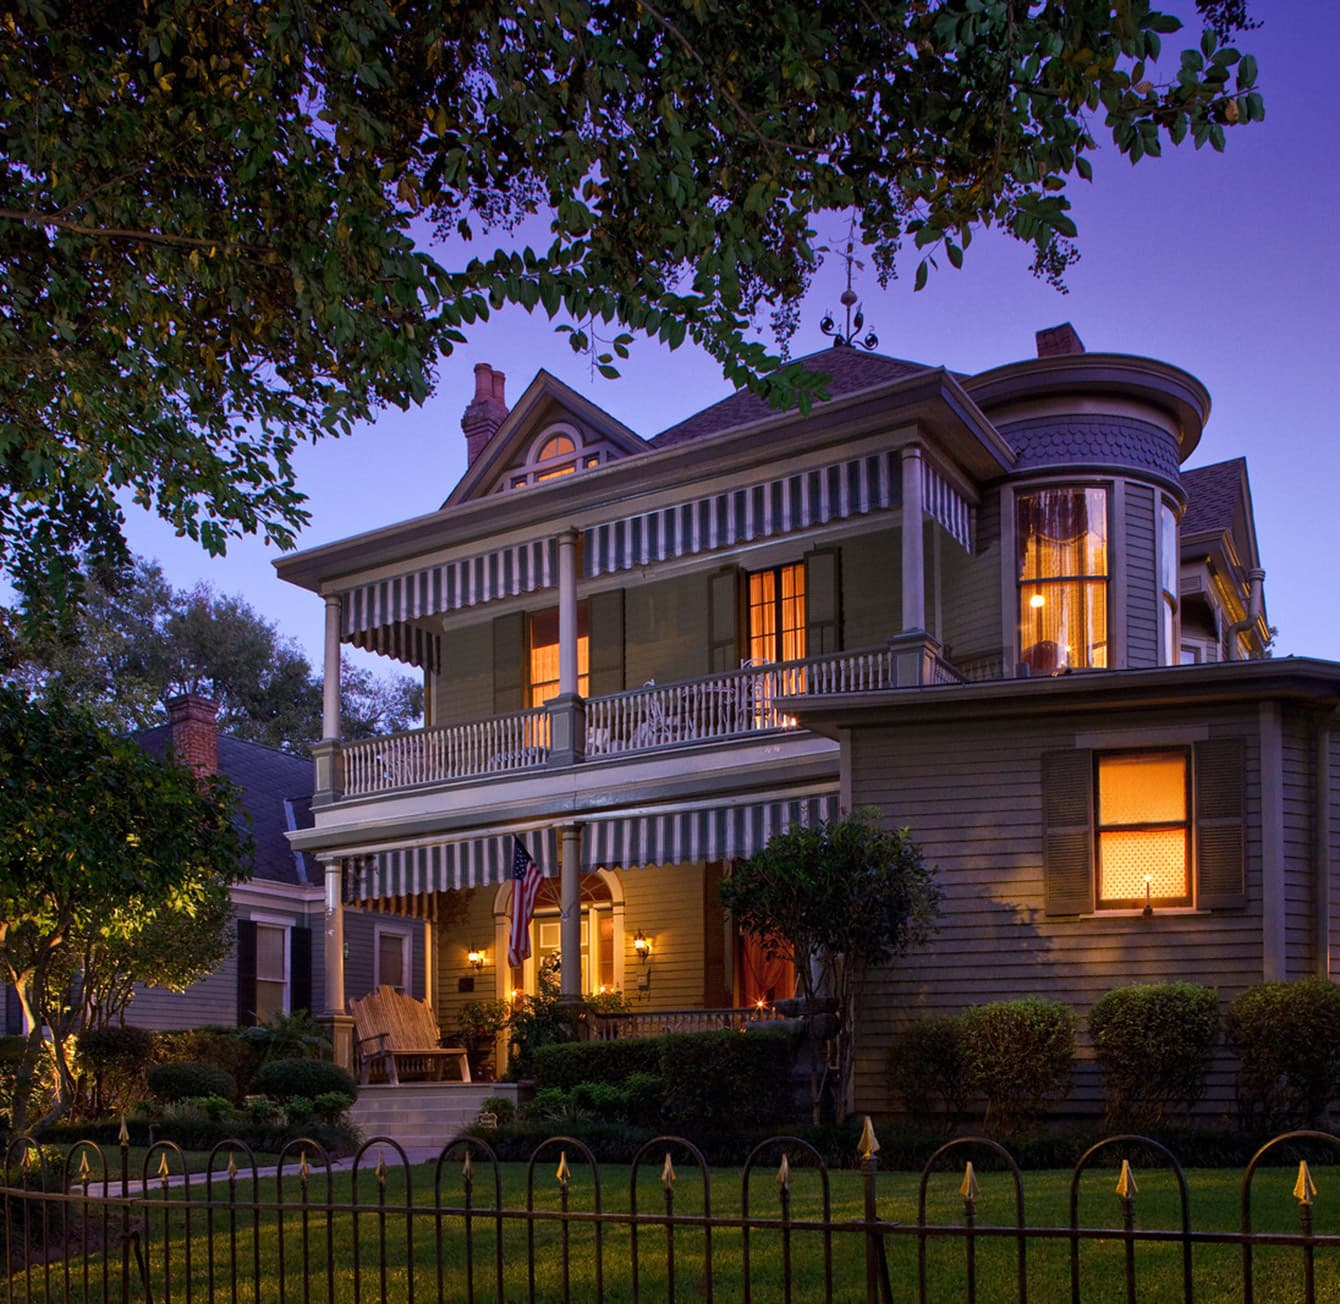 Devereaux Shields House at dusk